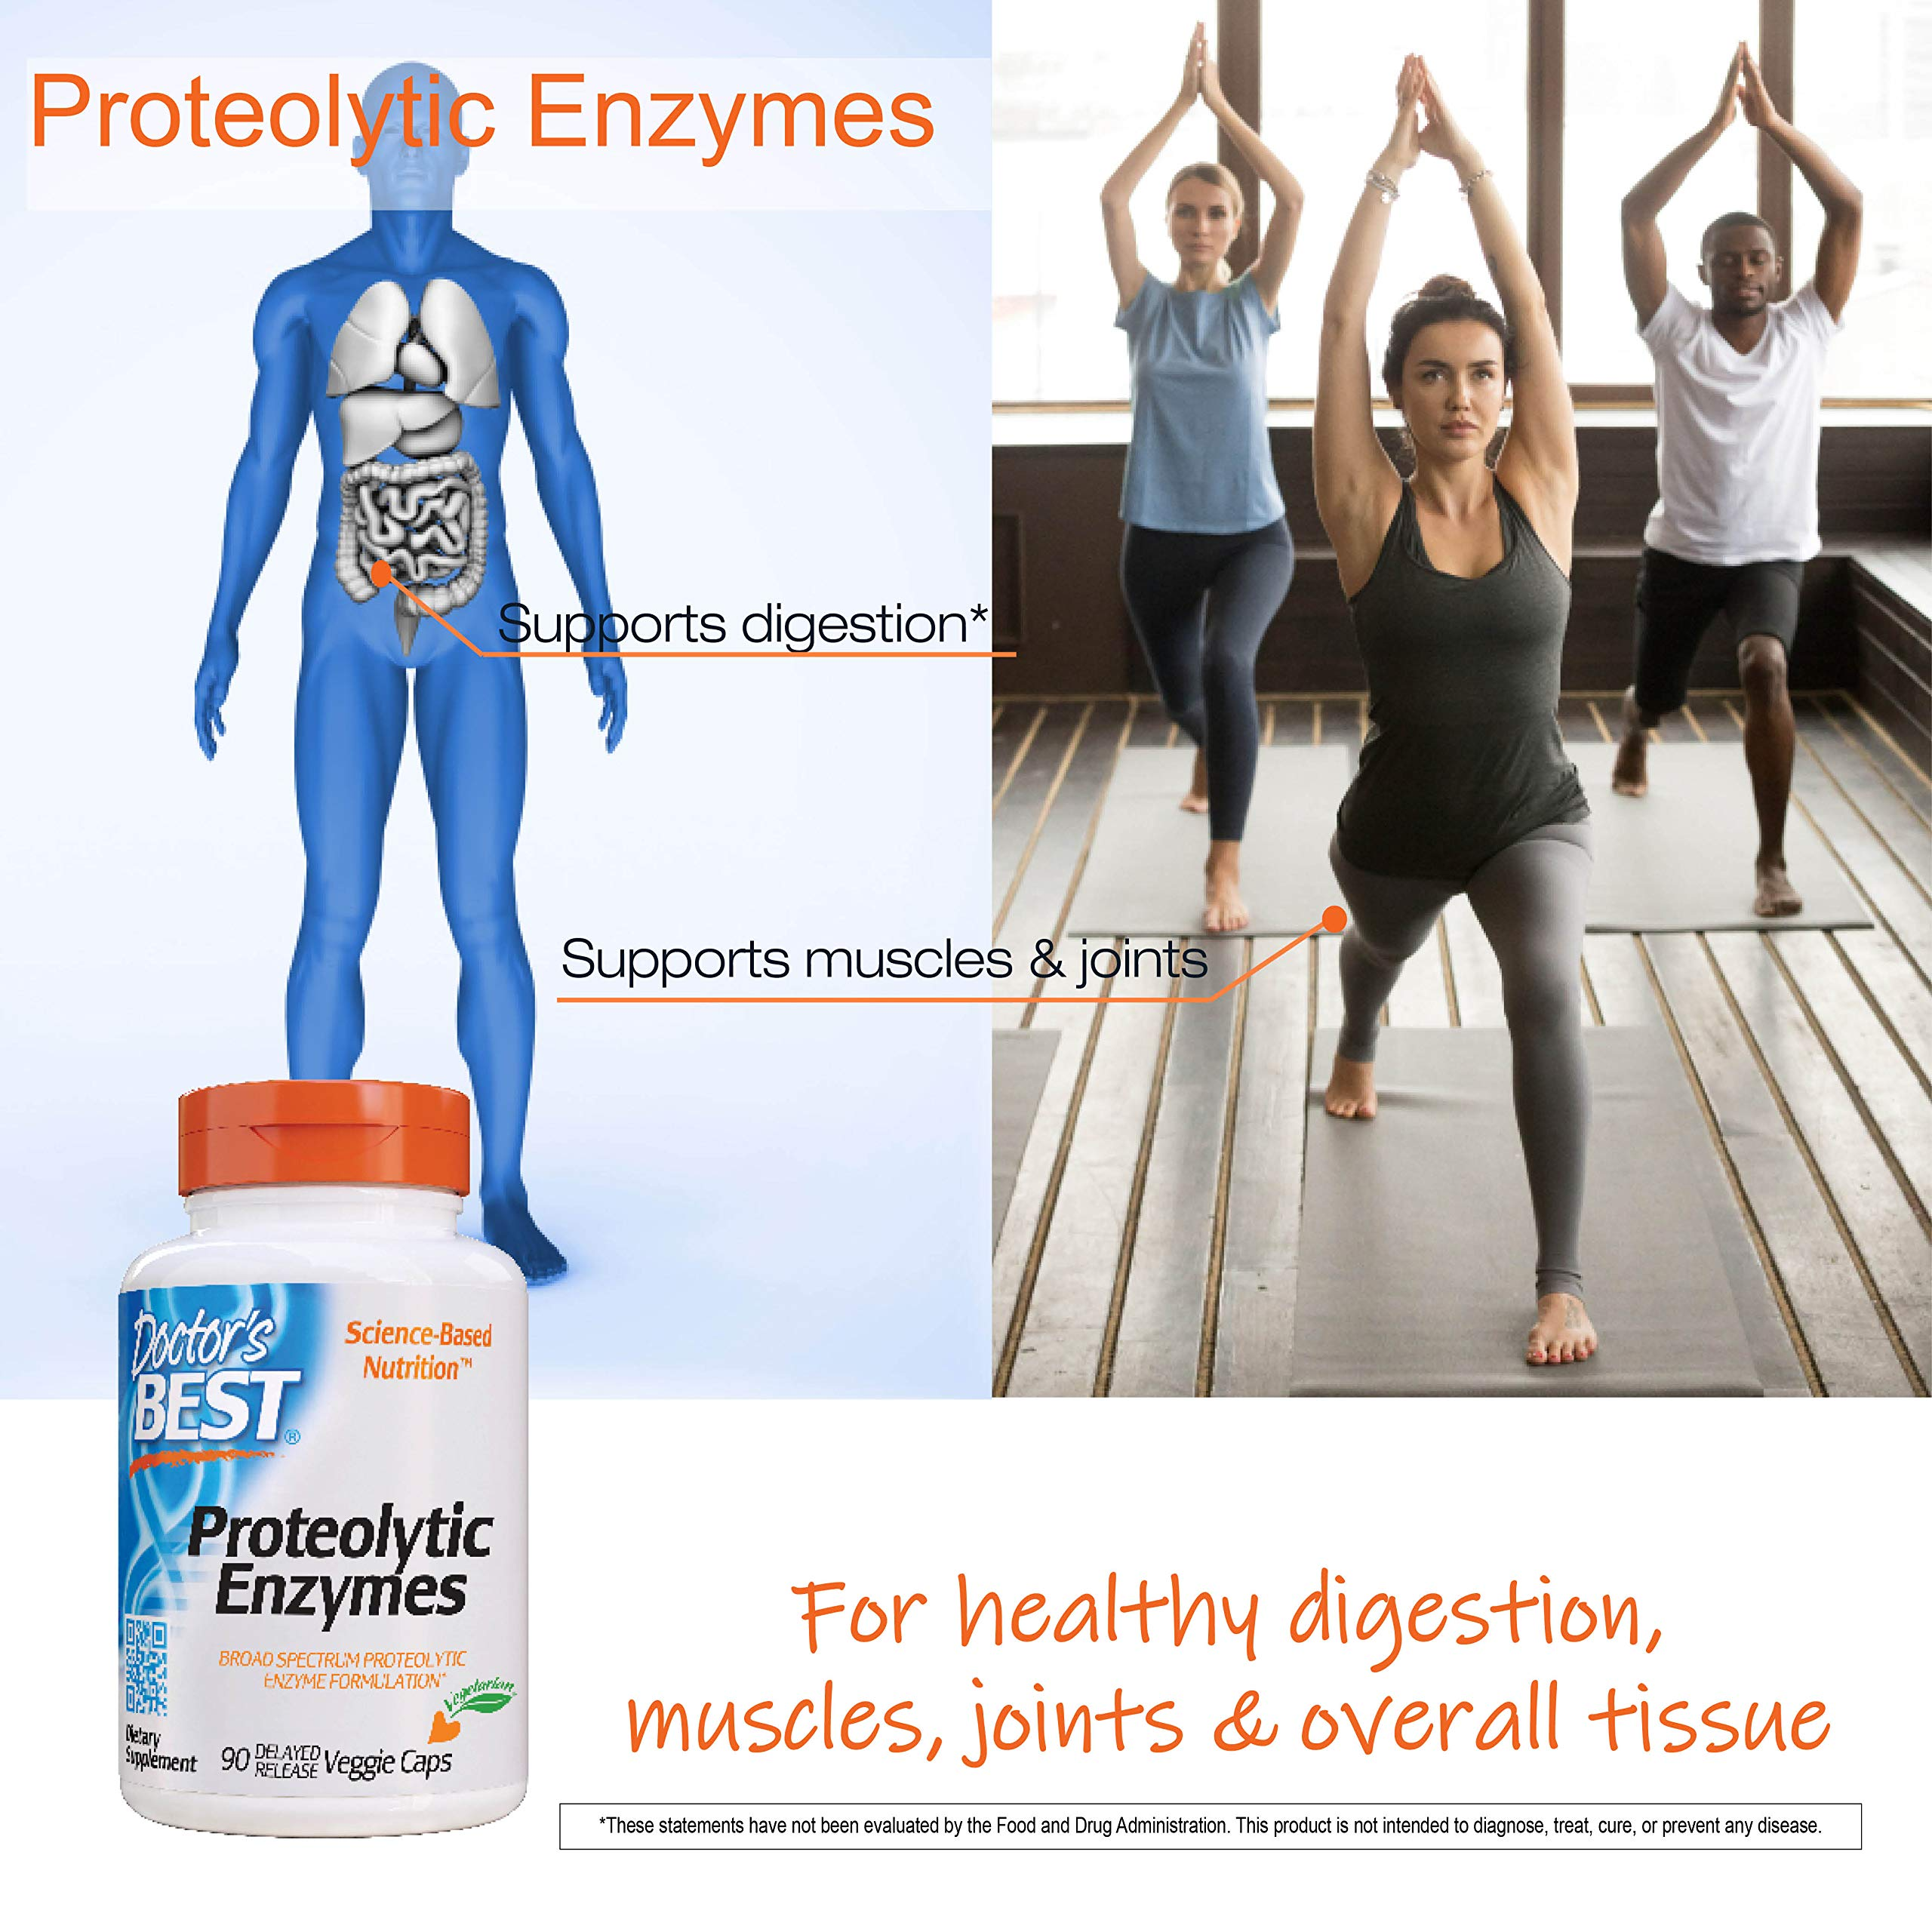 Doctor's Best Proteolytic enzymes, Digestion, Muscle, Joint